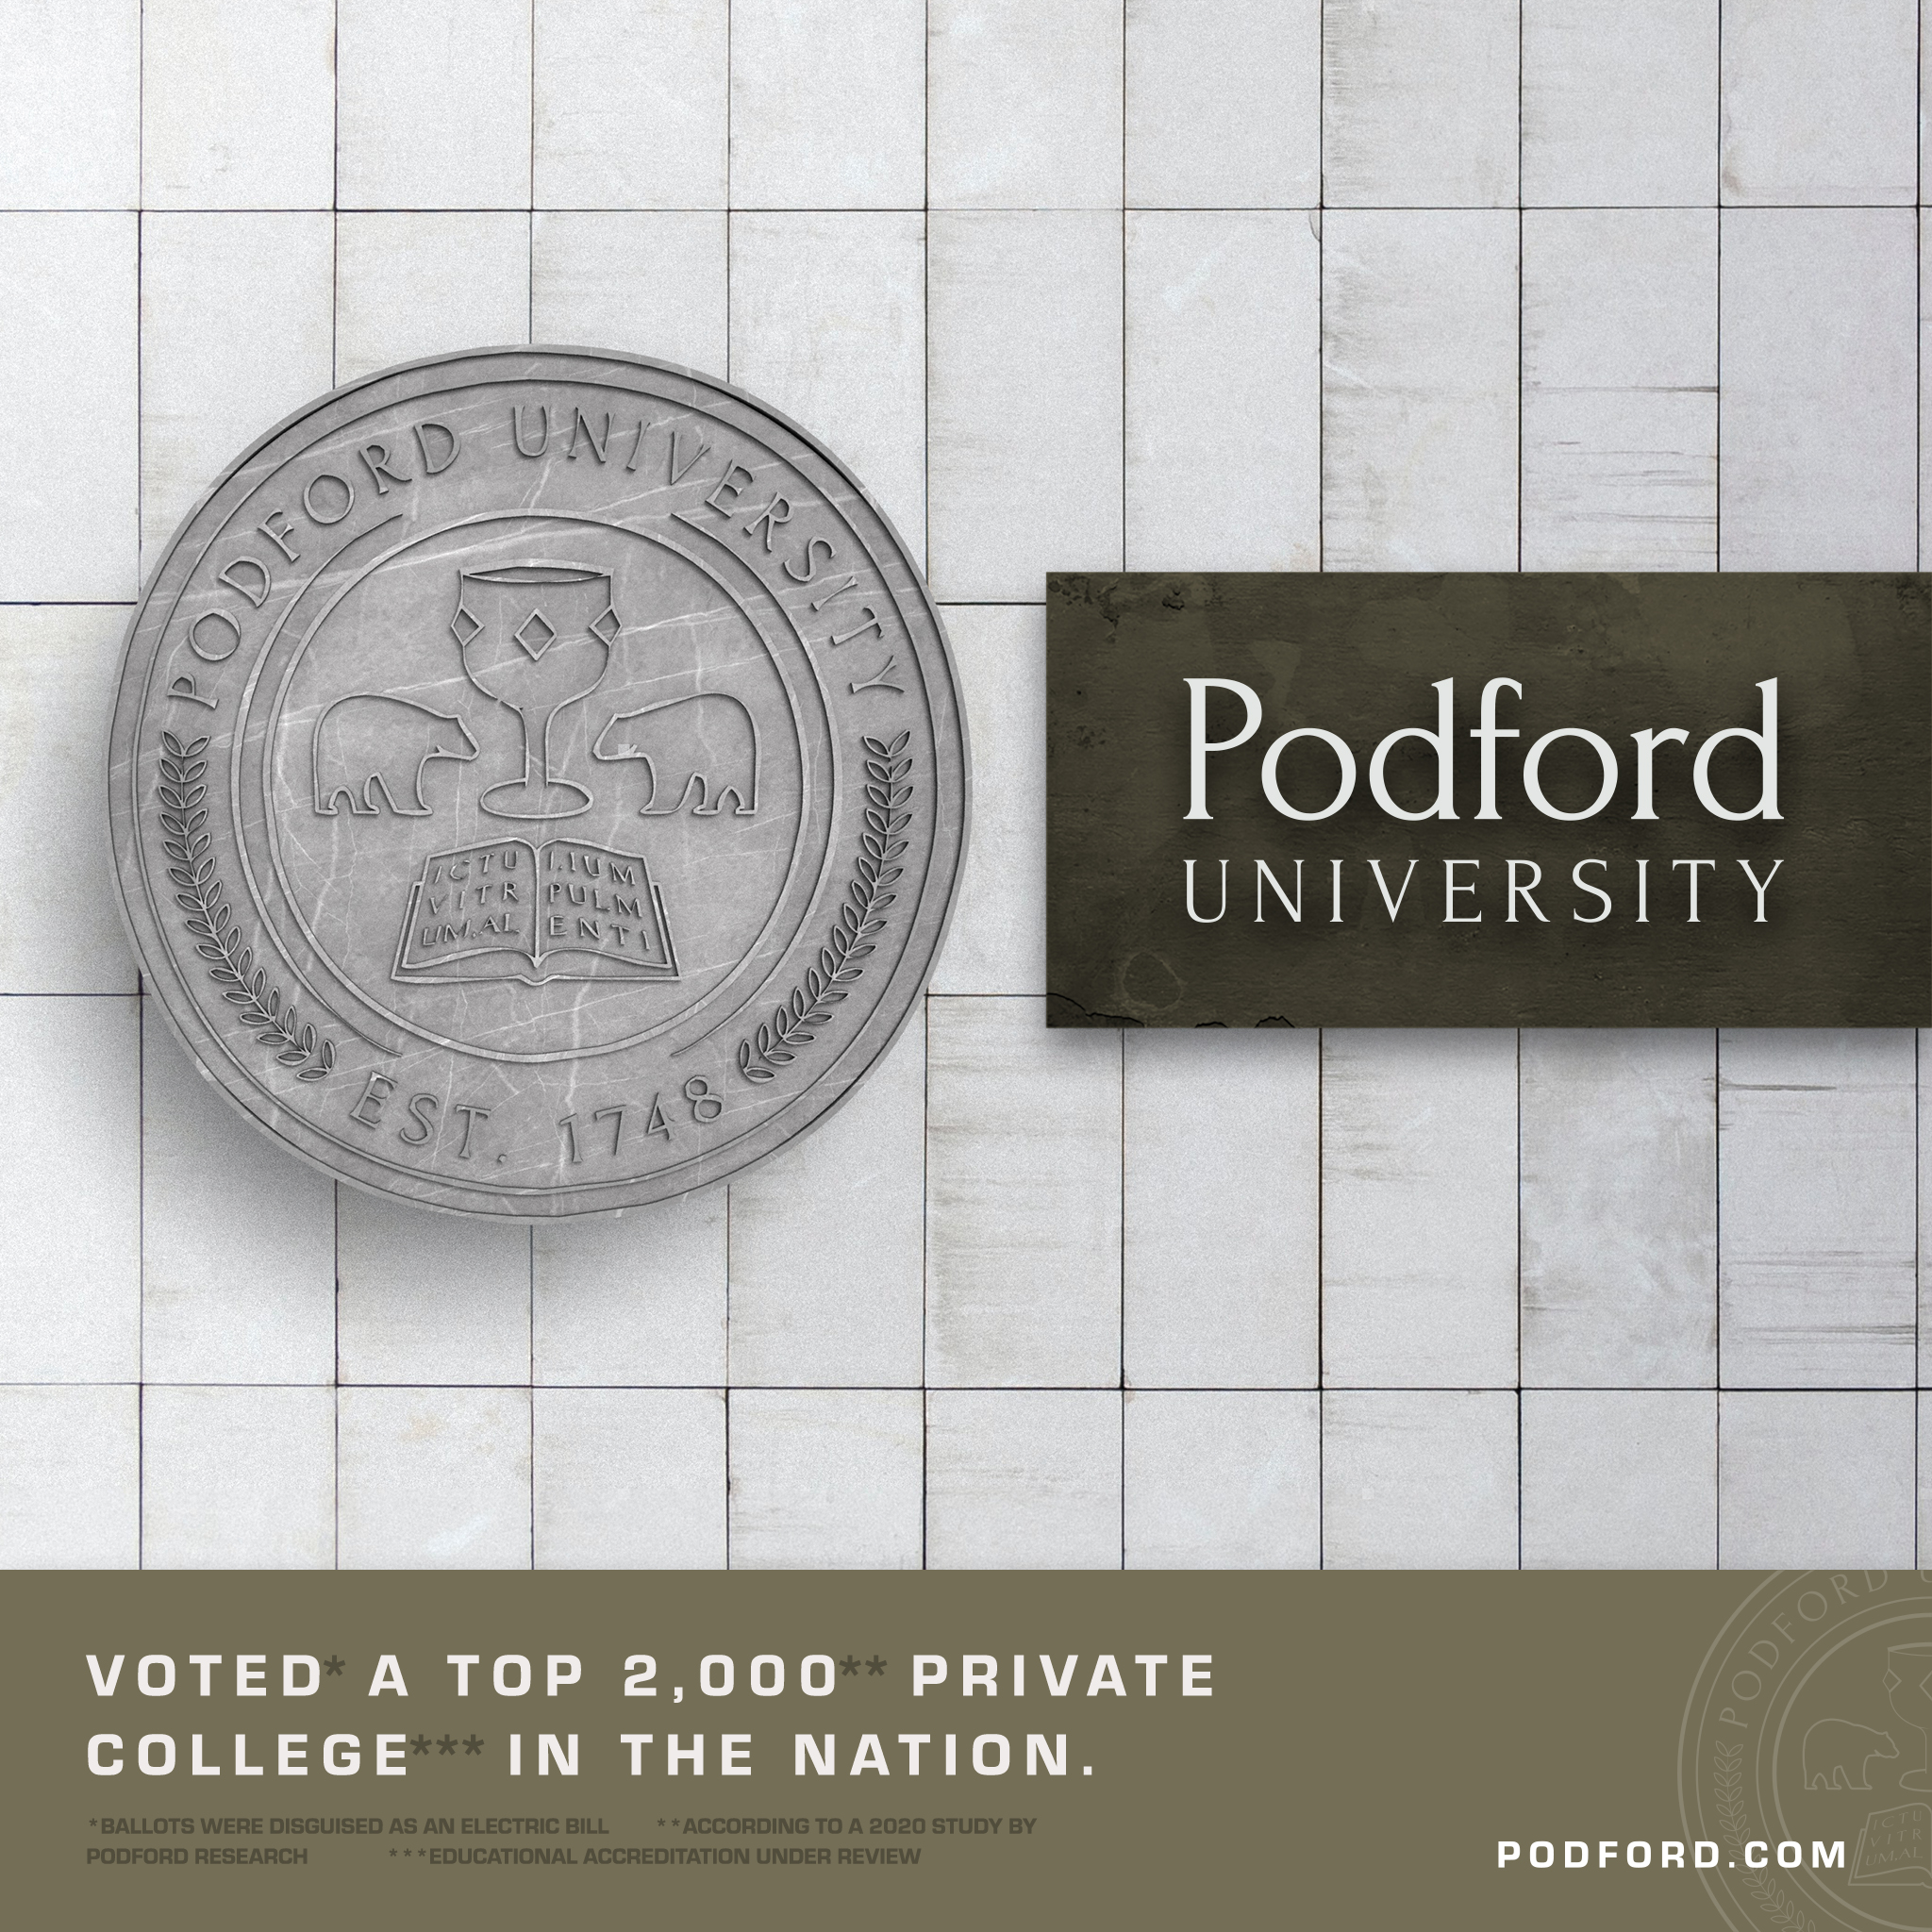 Podford University: Making Friends, Attending Parties, Reflecting on Peargate